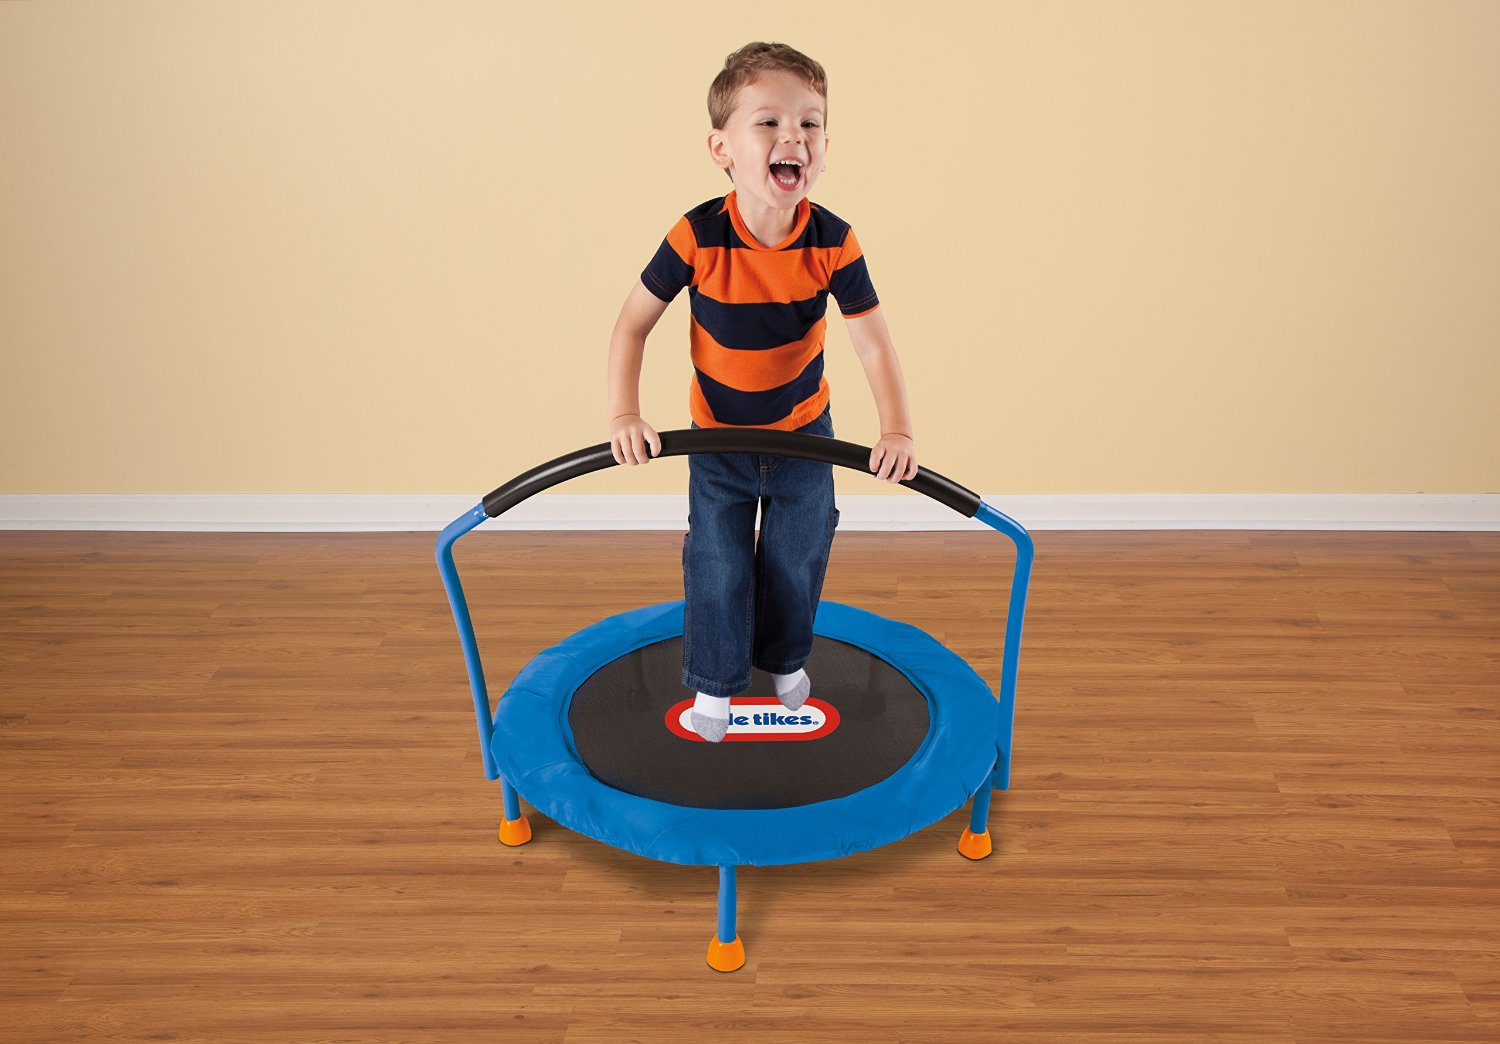 Fun Toys For Big Boys : Top toys for year old boys the absolute best